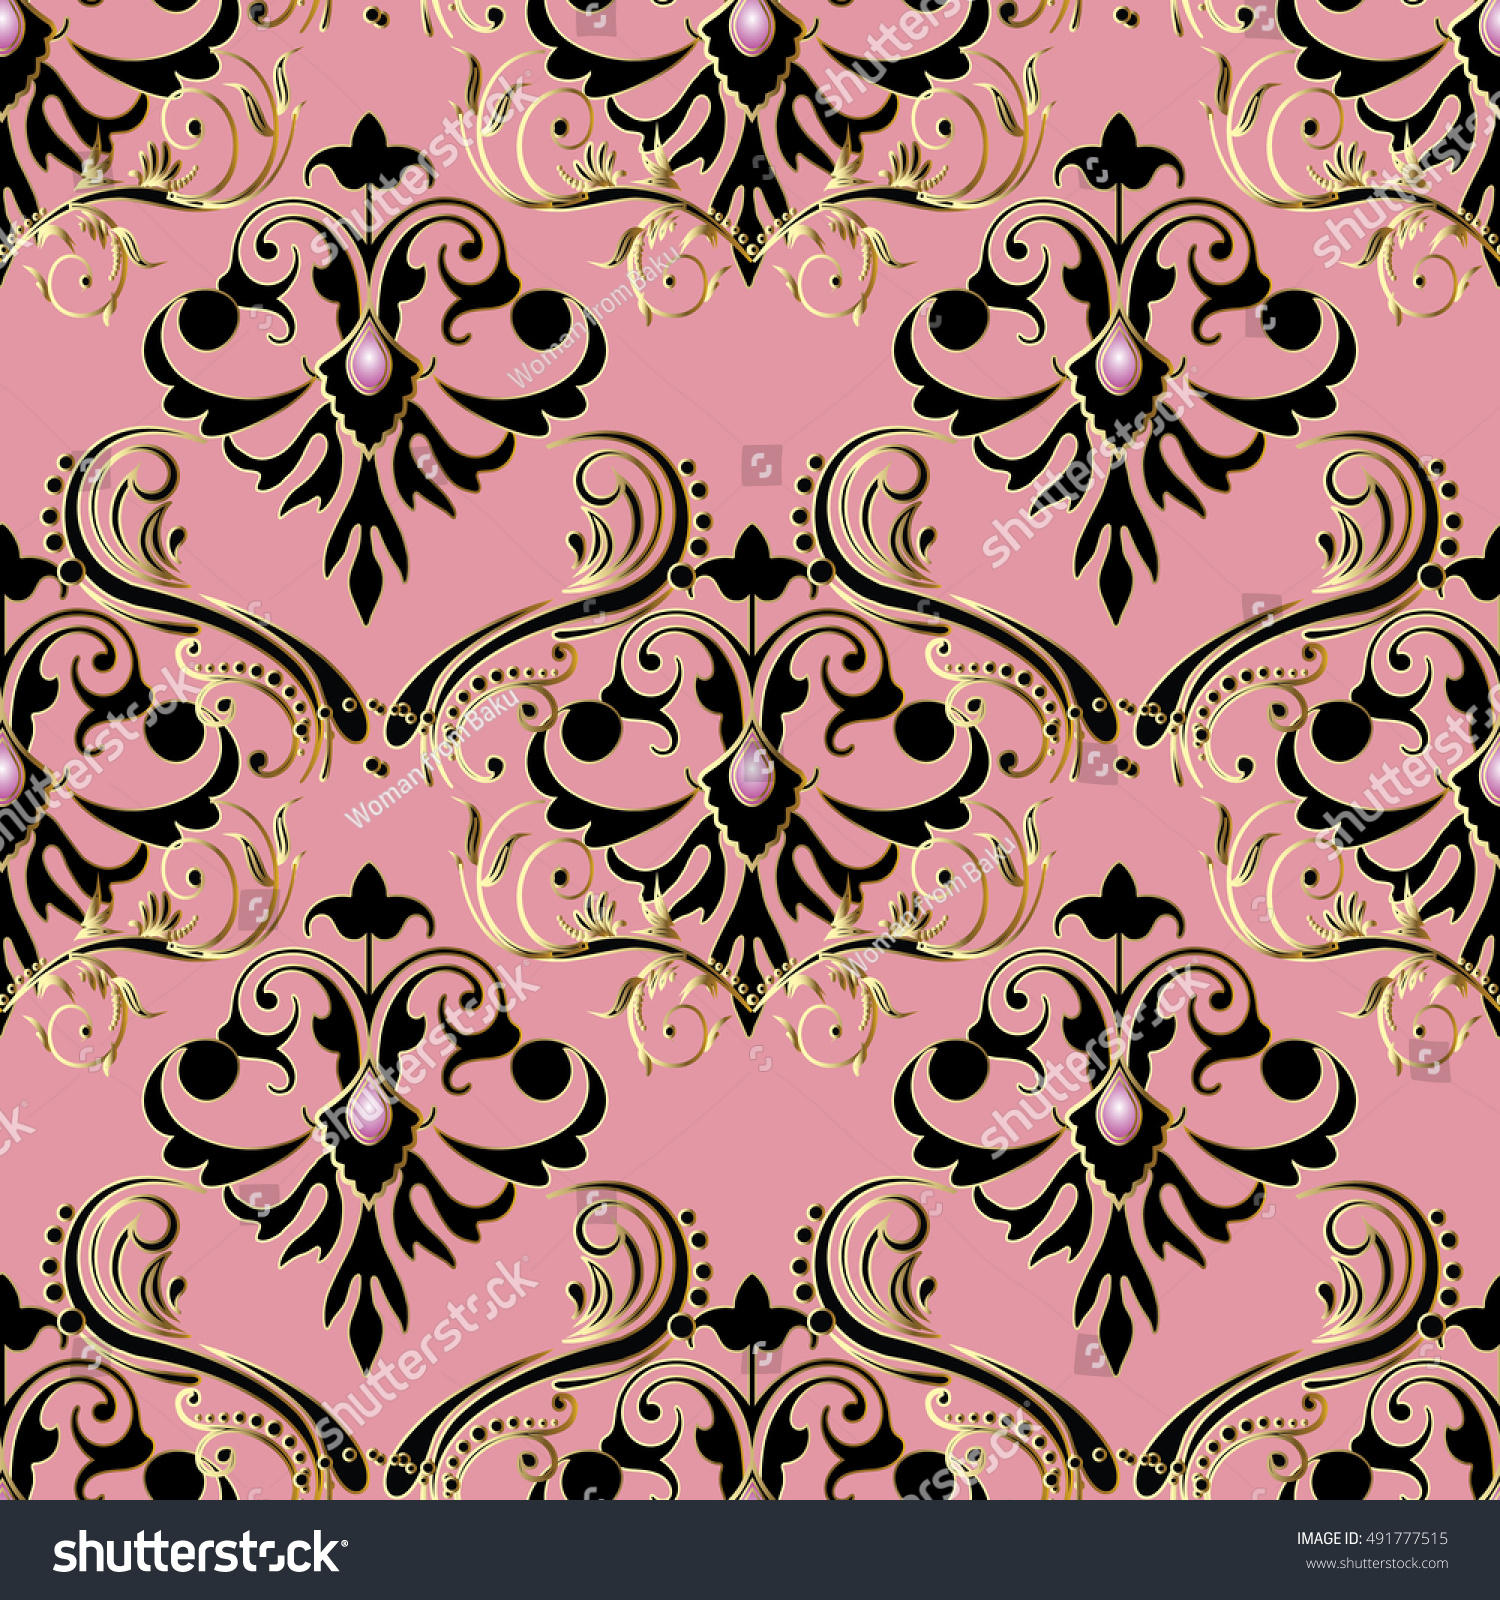 royaltyfree elegant light pink baroque damask� 491777515